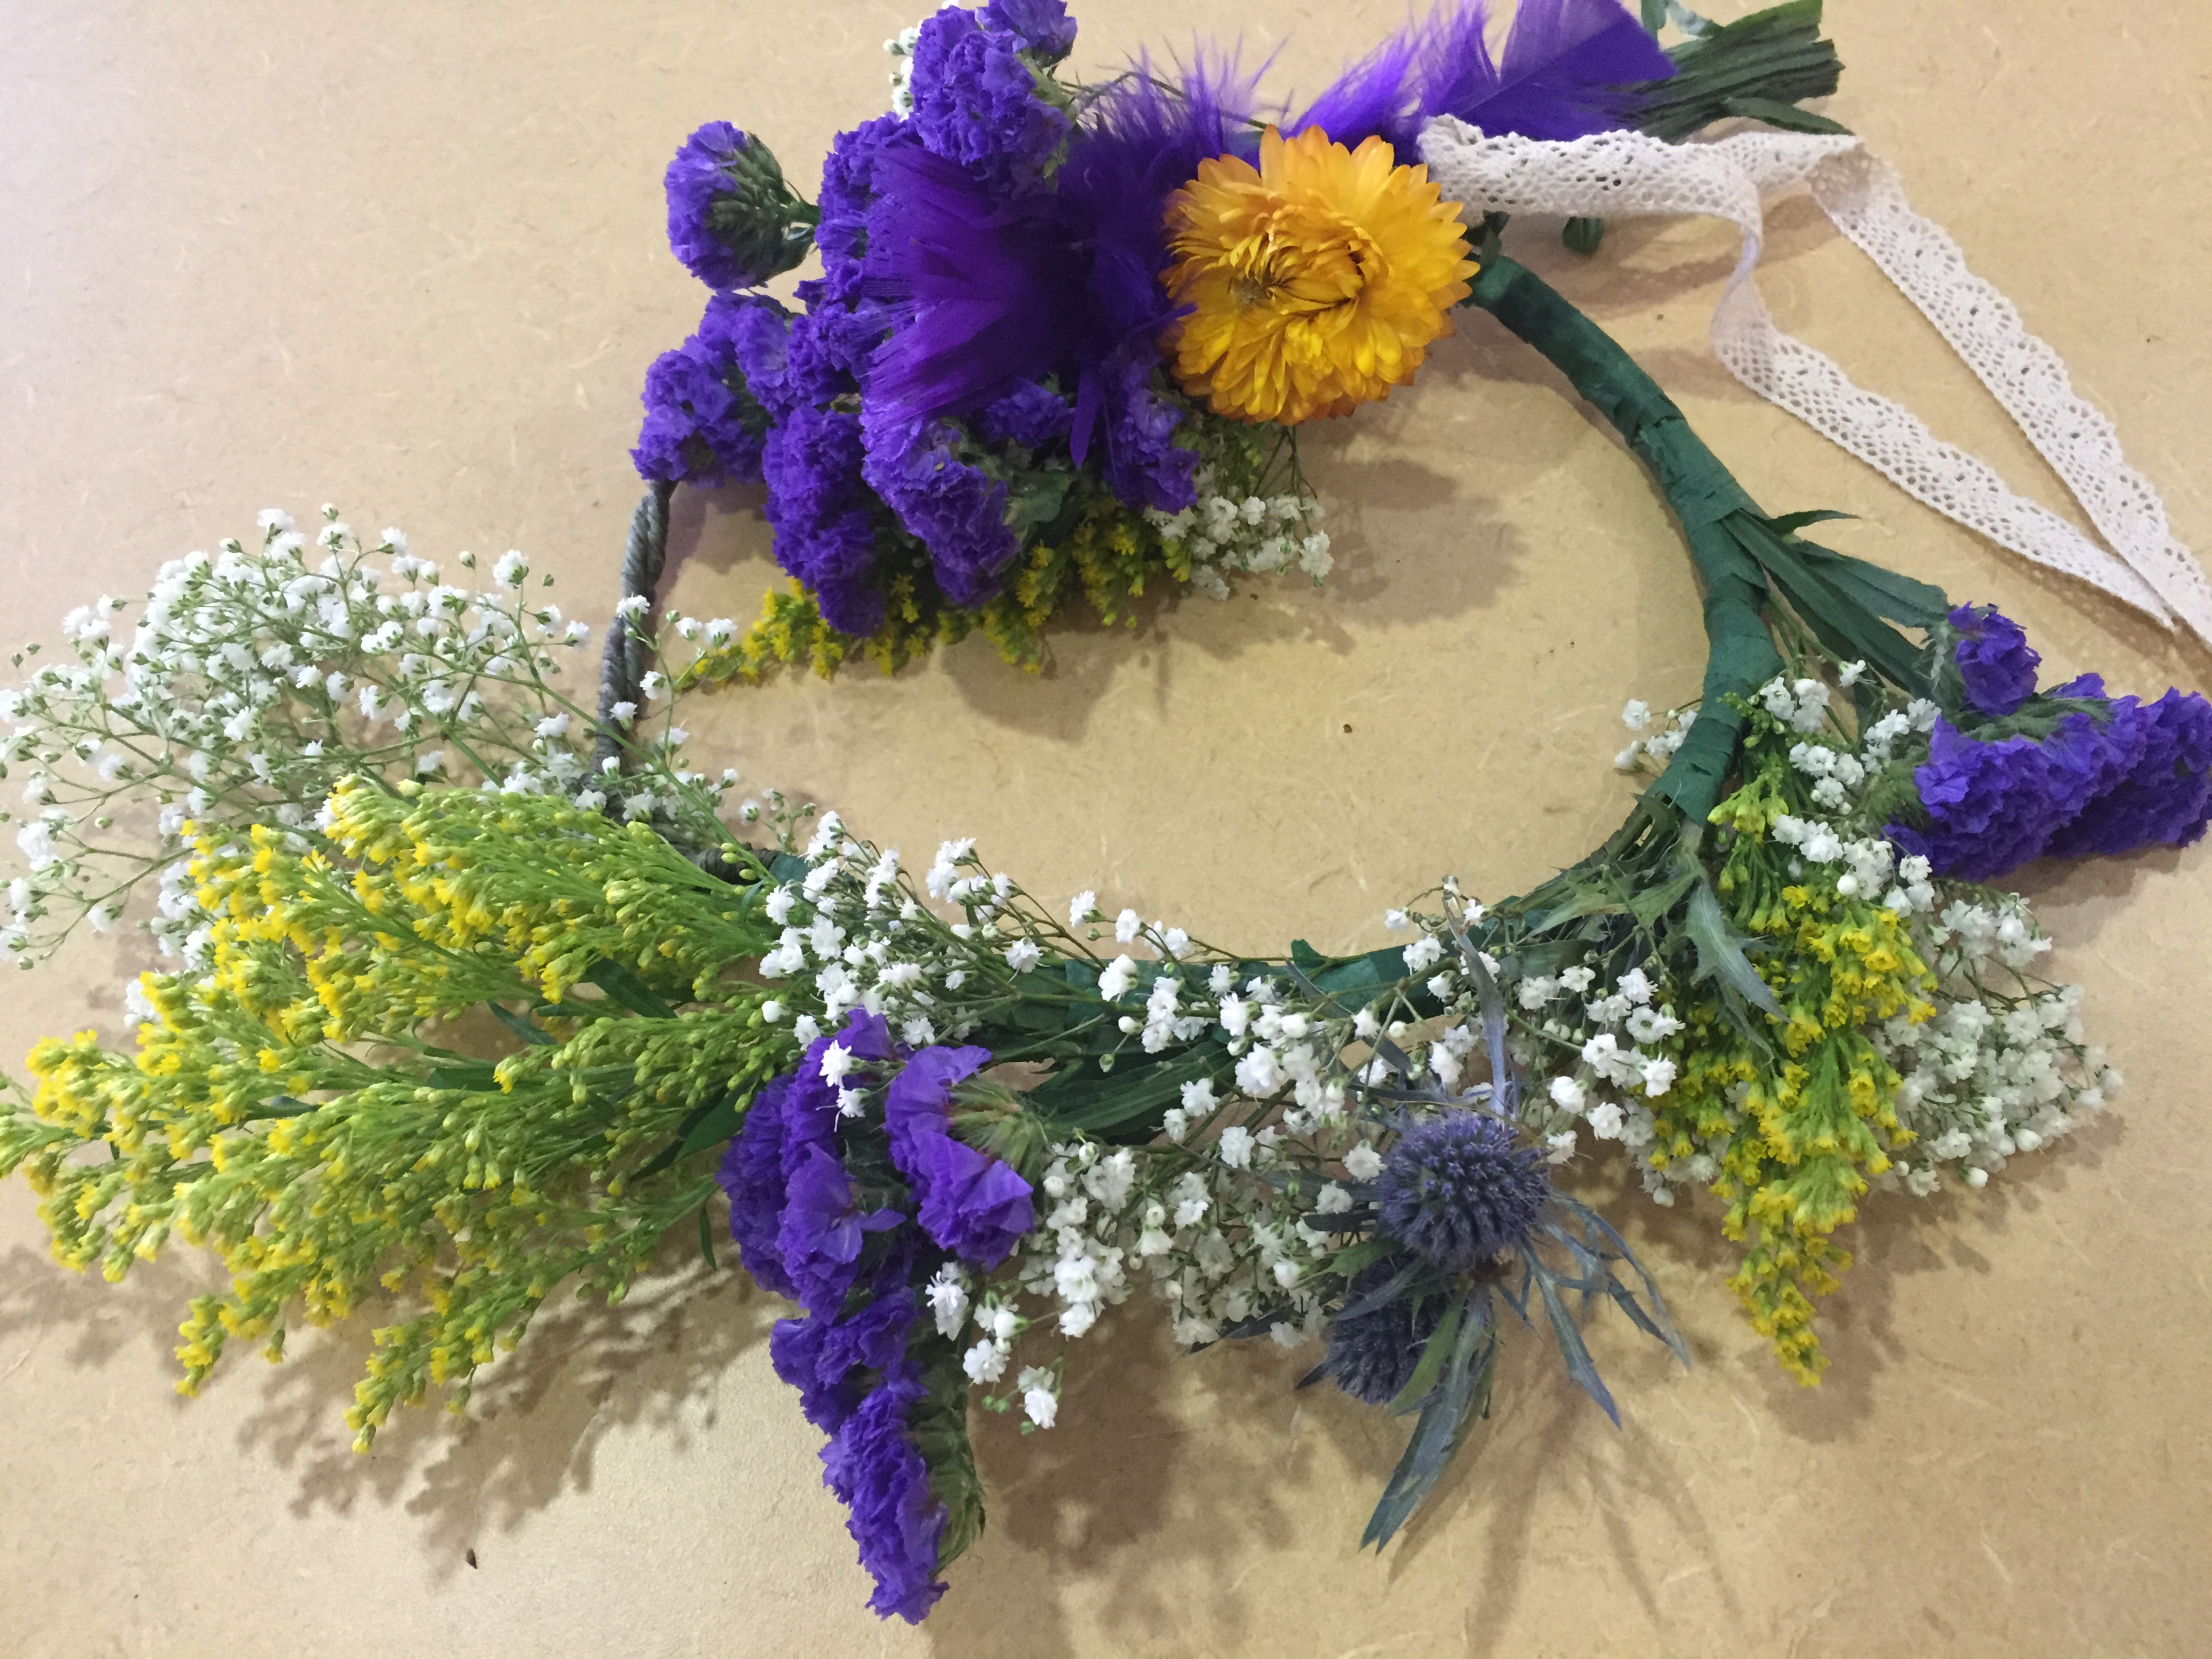 Kentucky Derby Floral Crowns therapeutic horticulture spring programs eatbreathegarden